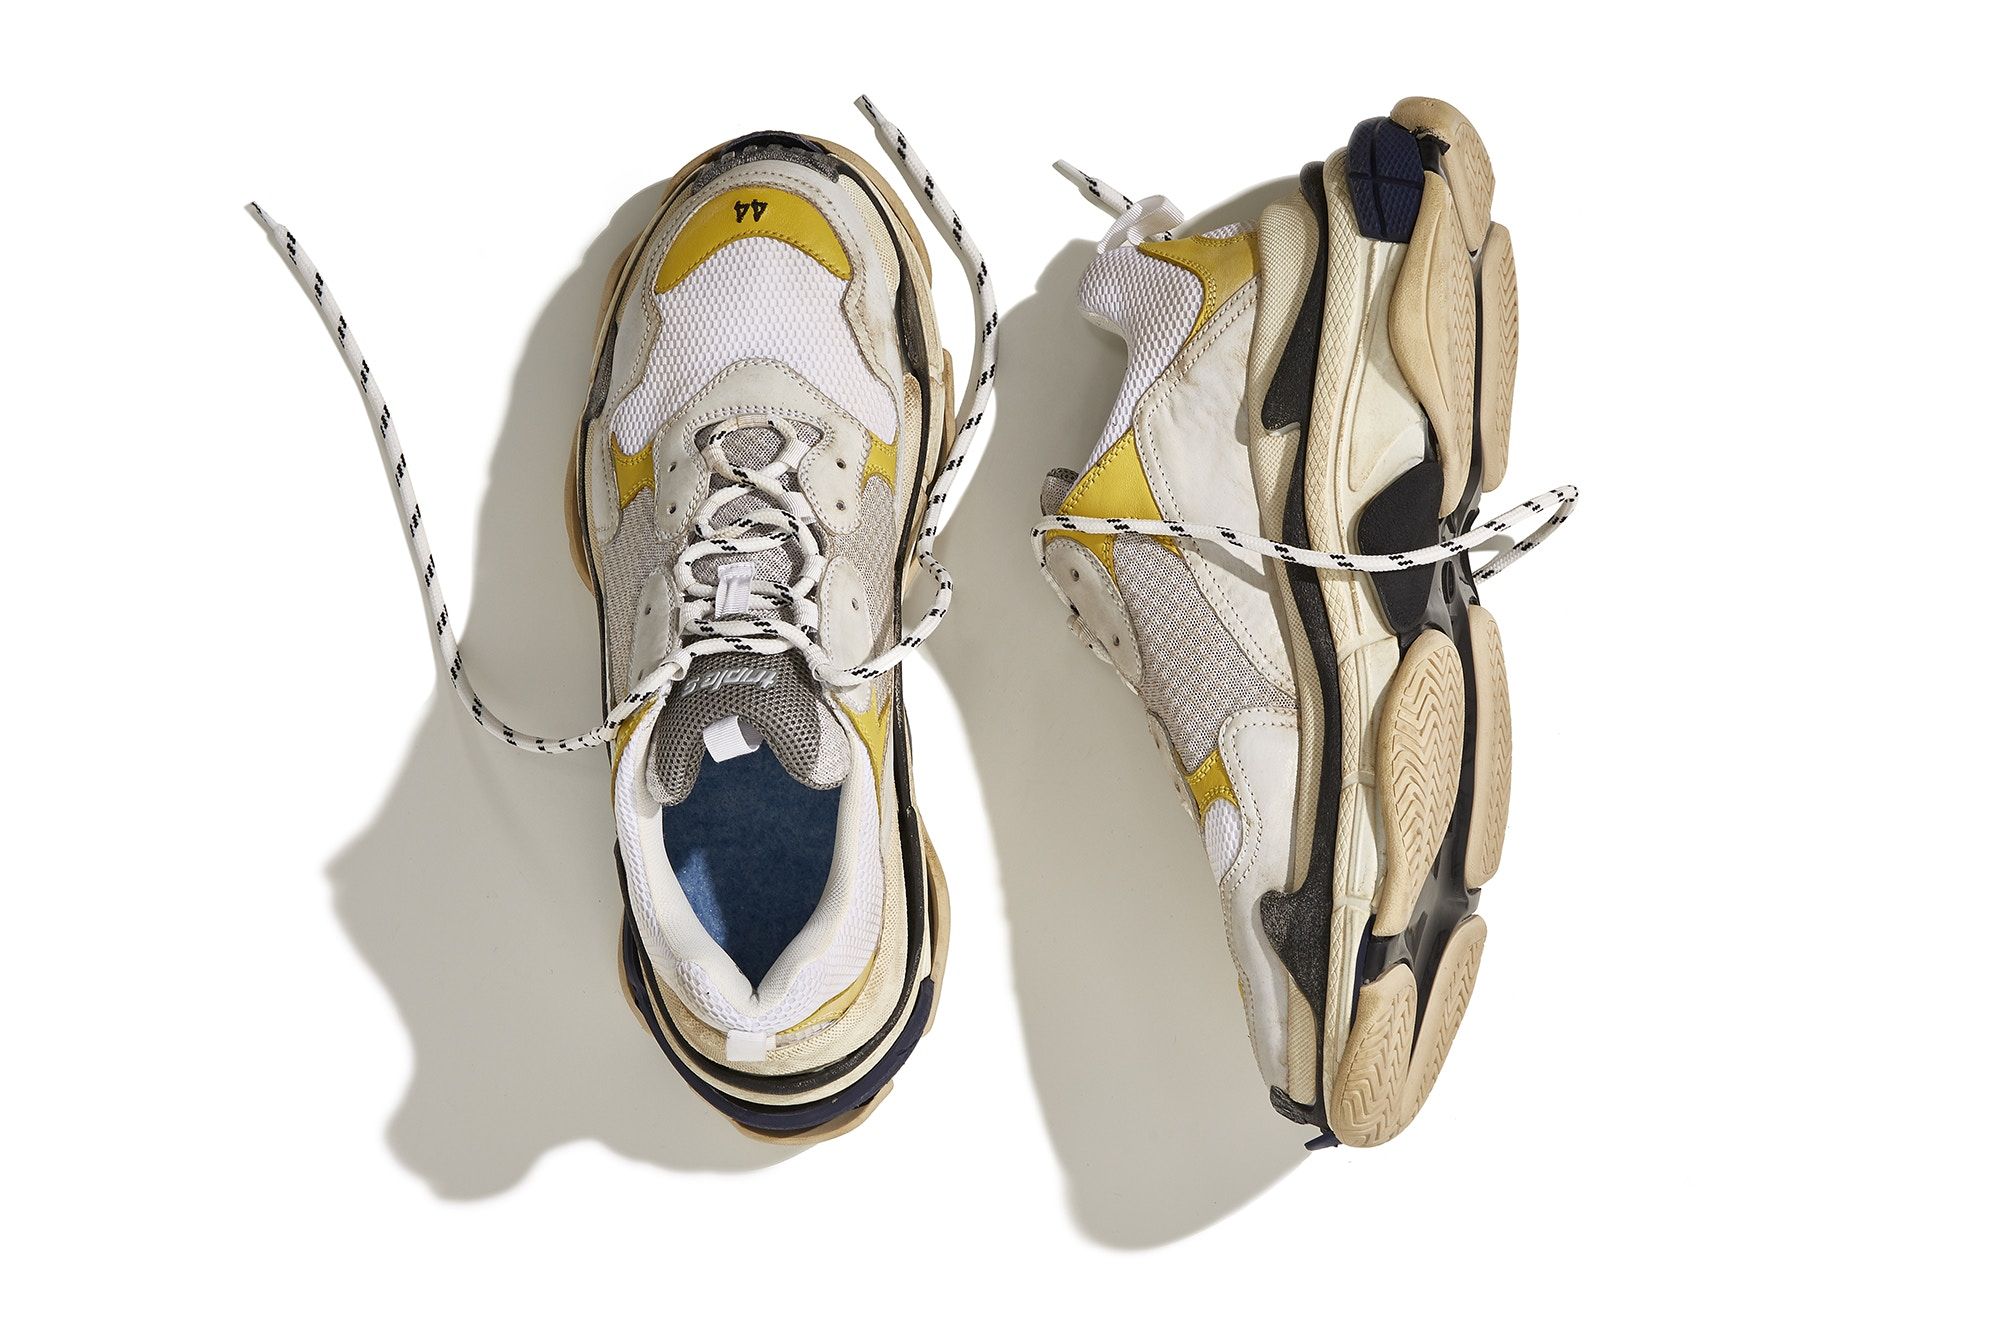 9c8e1f62a36 Balenciaga and Dover Street Market Drop Exclusive Triple S Colorway ...